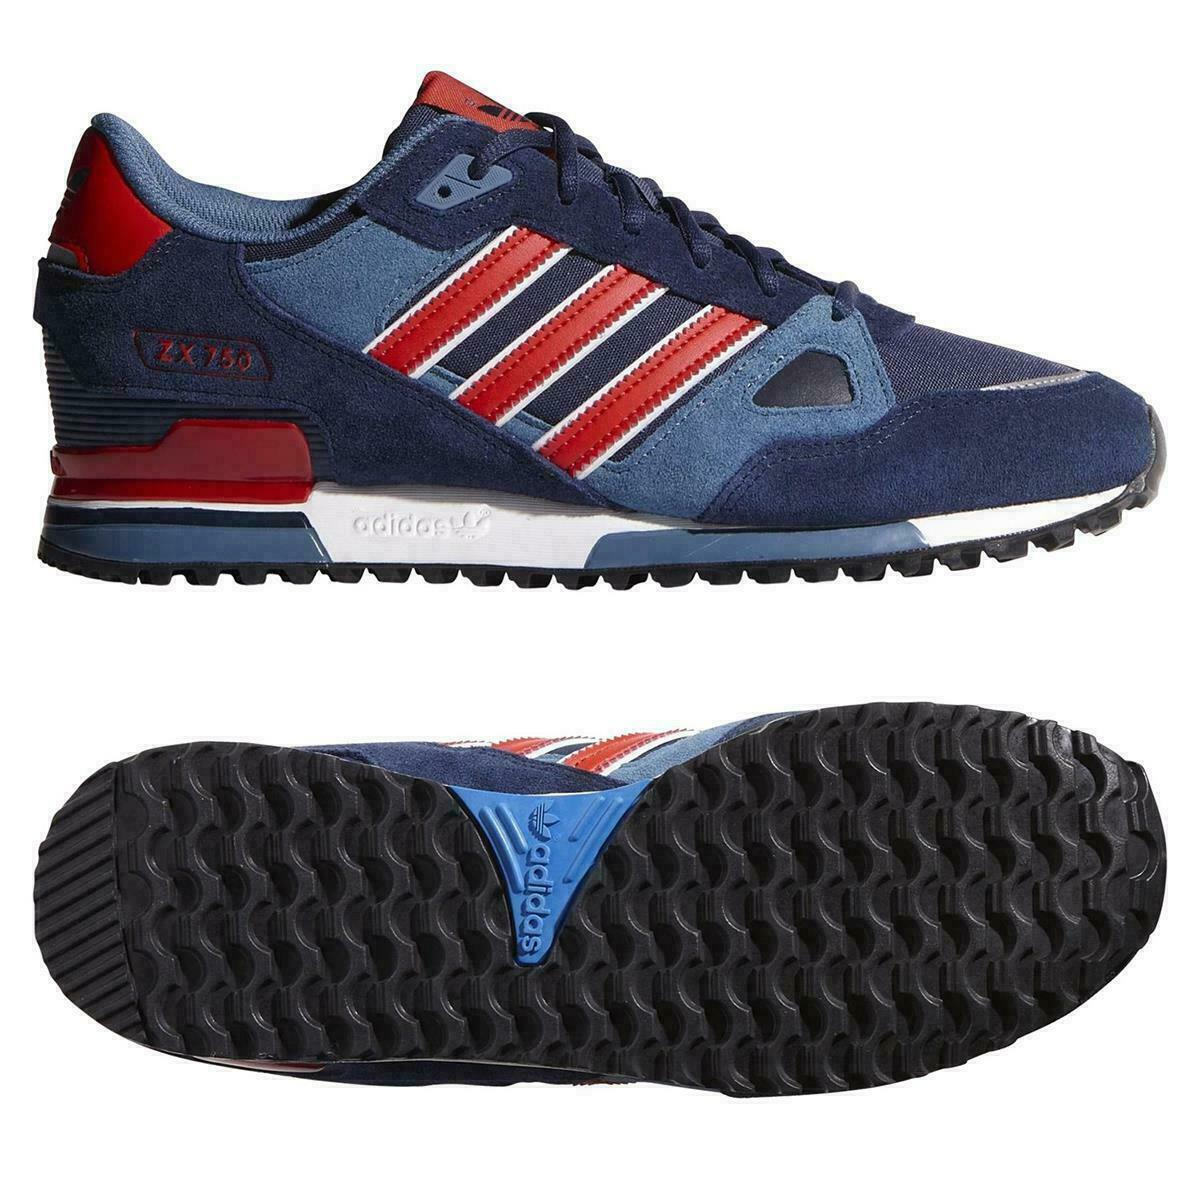 Adidas ZX 750 Suede Men's Trainers All